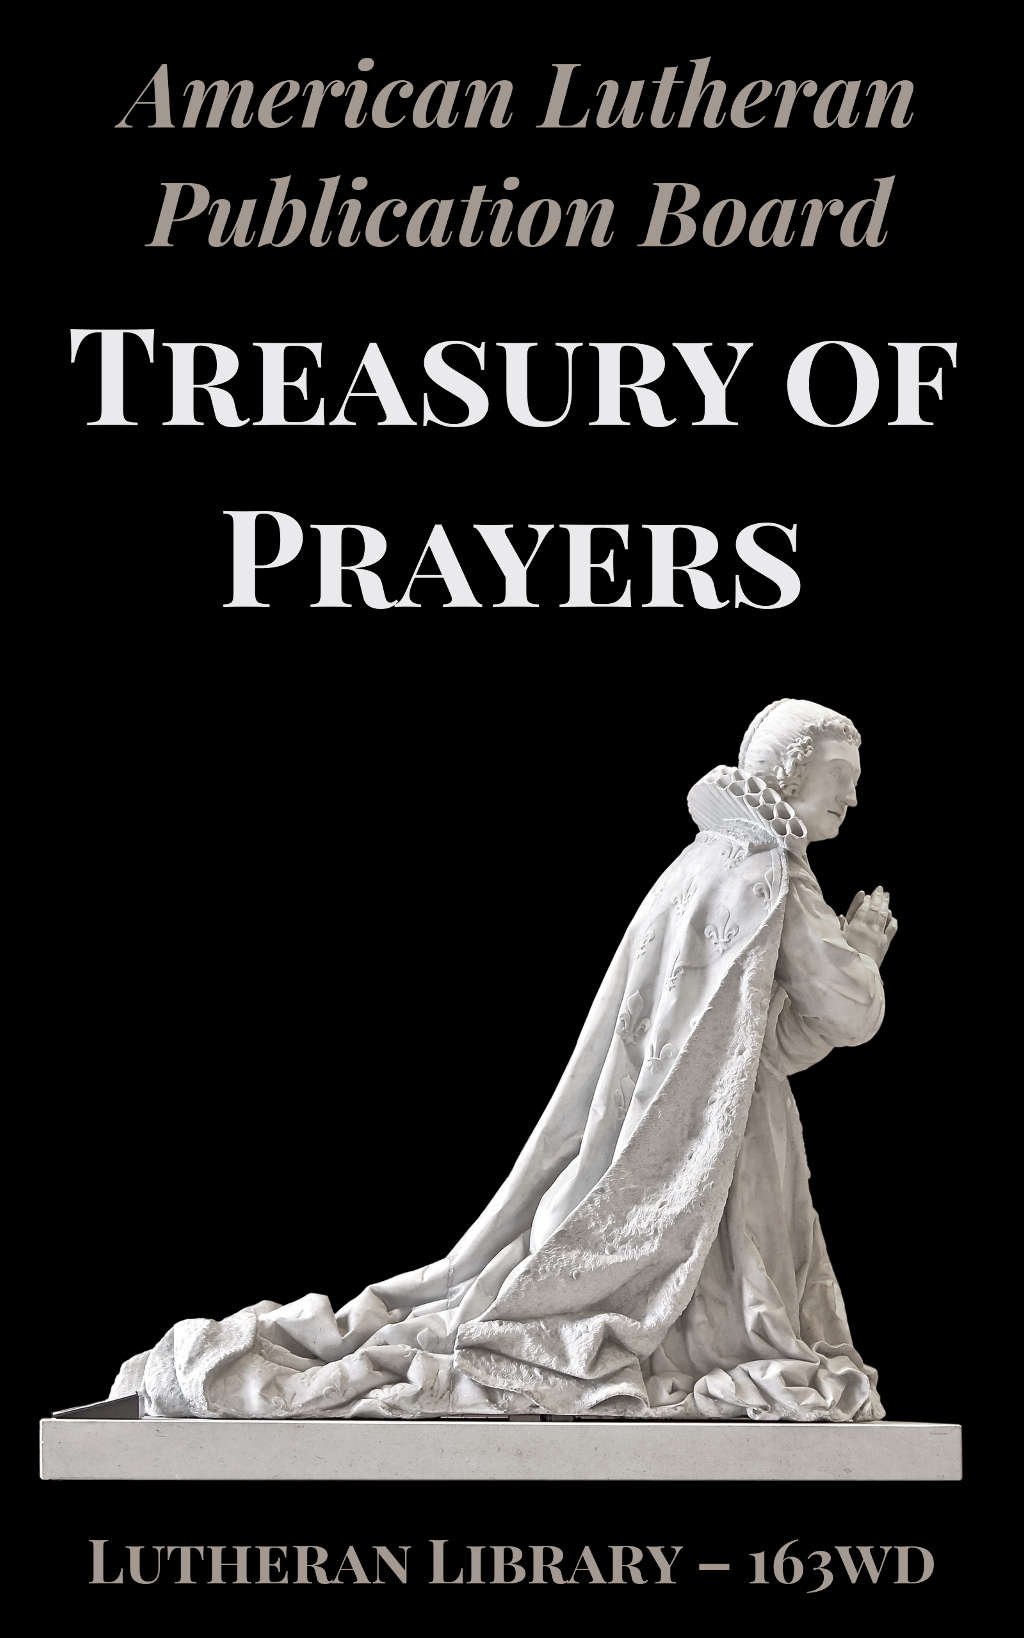 A Lutheran Treasury of Prayers by the American Lutheran Publication Board